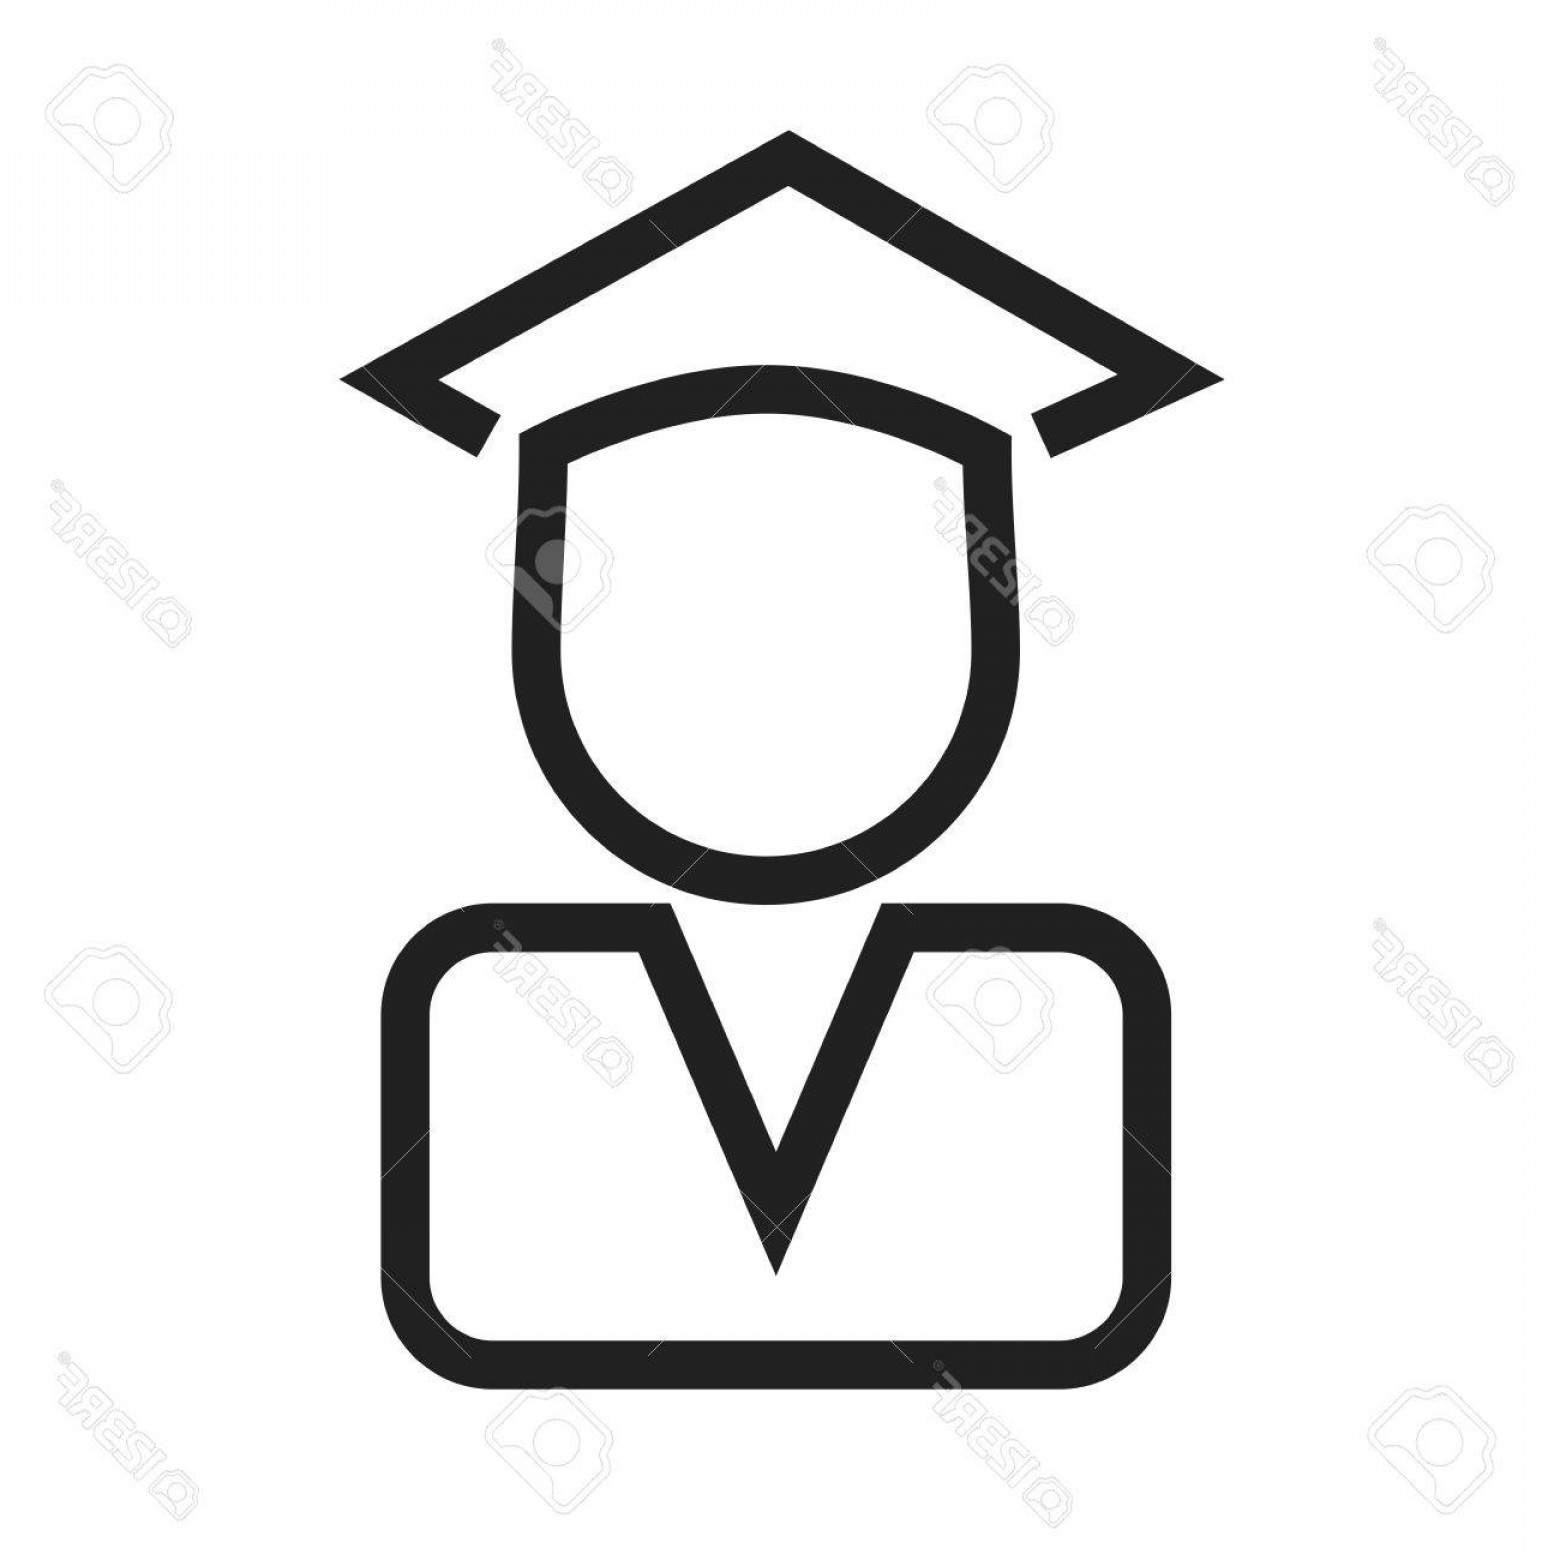 Diploma Icon Vector: Photostock Vector Certificate Diploma Convocation Degree Icon Vector Image Can Also Be Used For Education Academics An